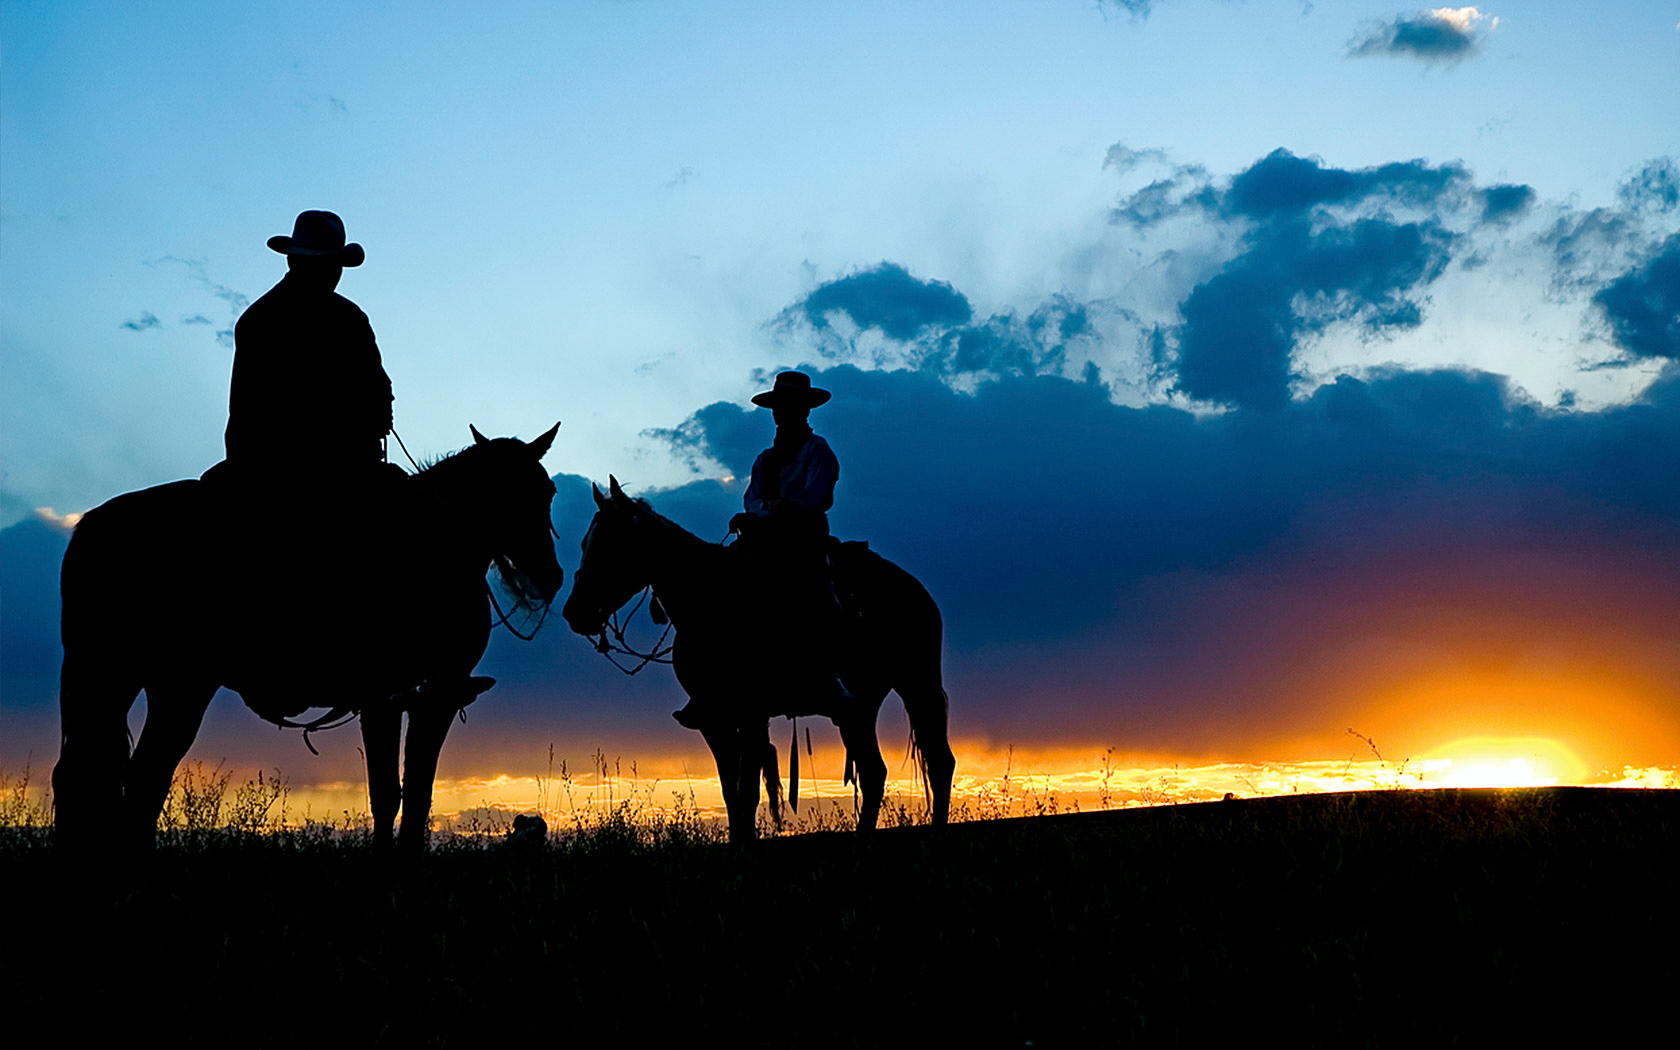 Silhouette of cowboys on horses at sunset